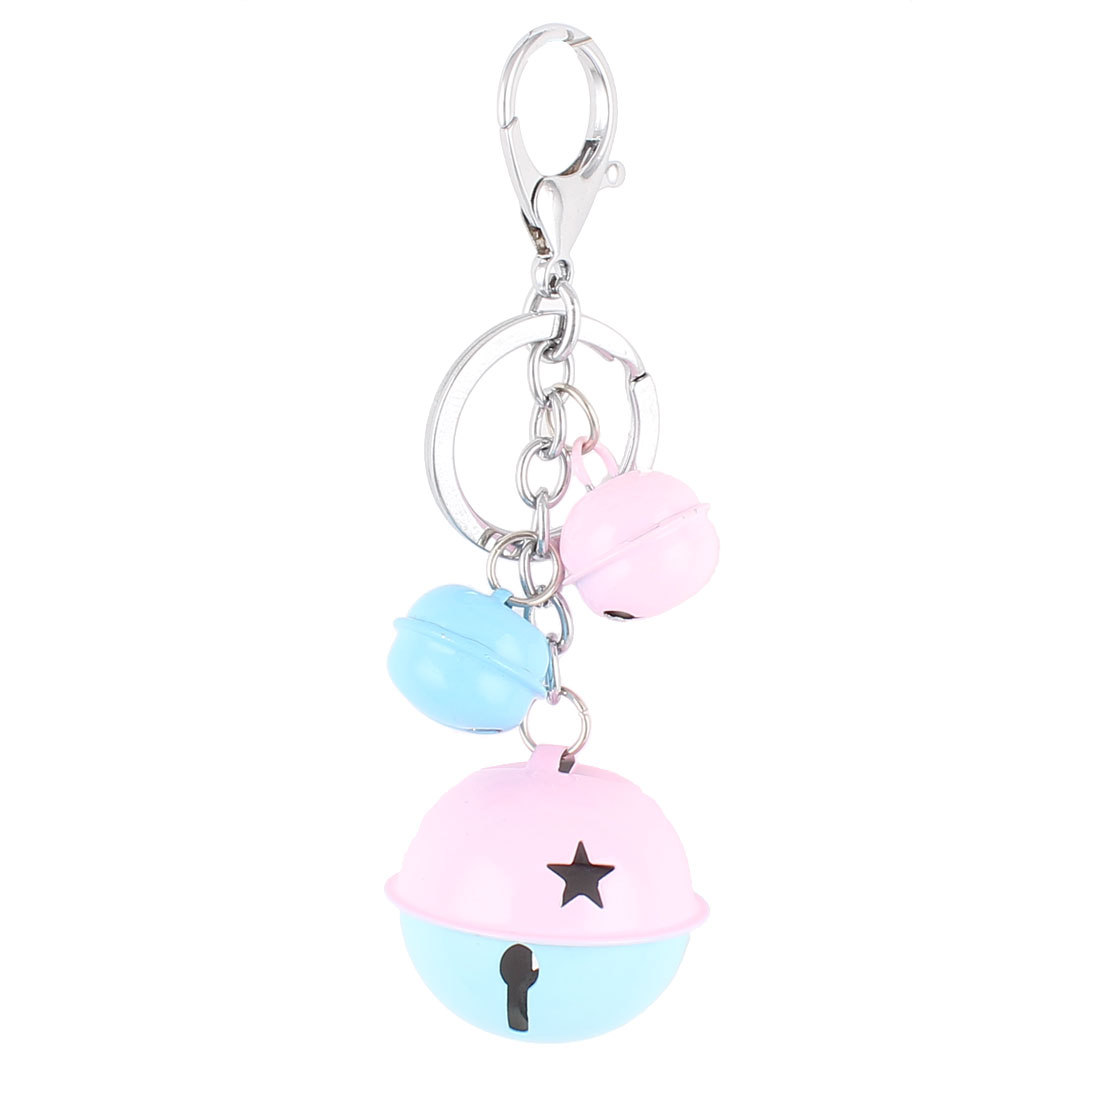 Bells Pendant Lobster Clasp Split Keyring Keychain Hanging Ornament Blue Pink